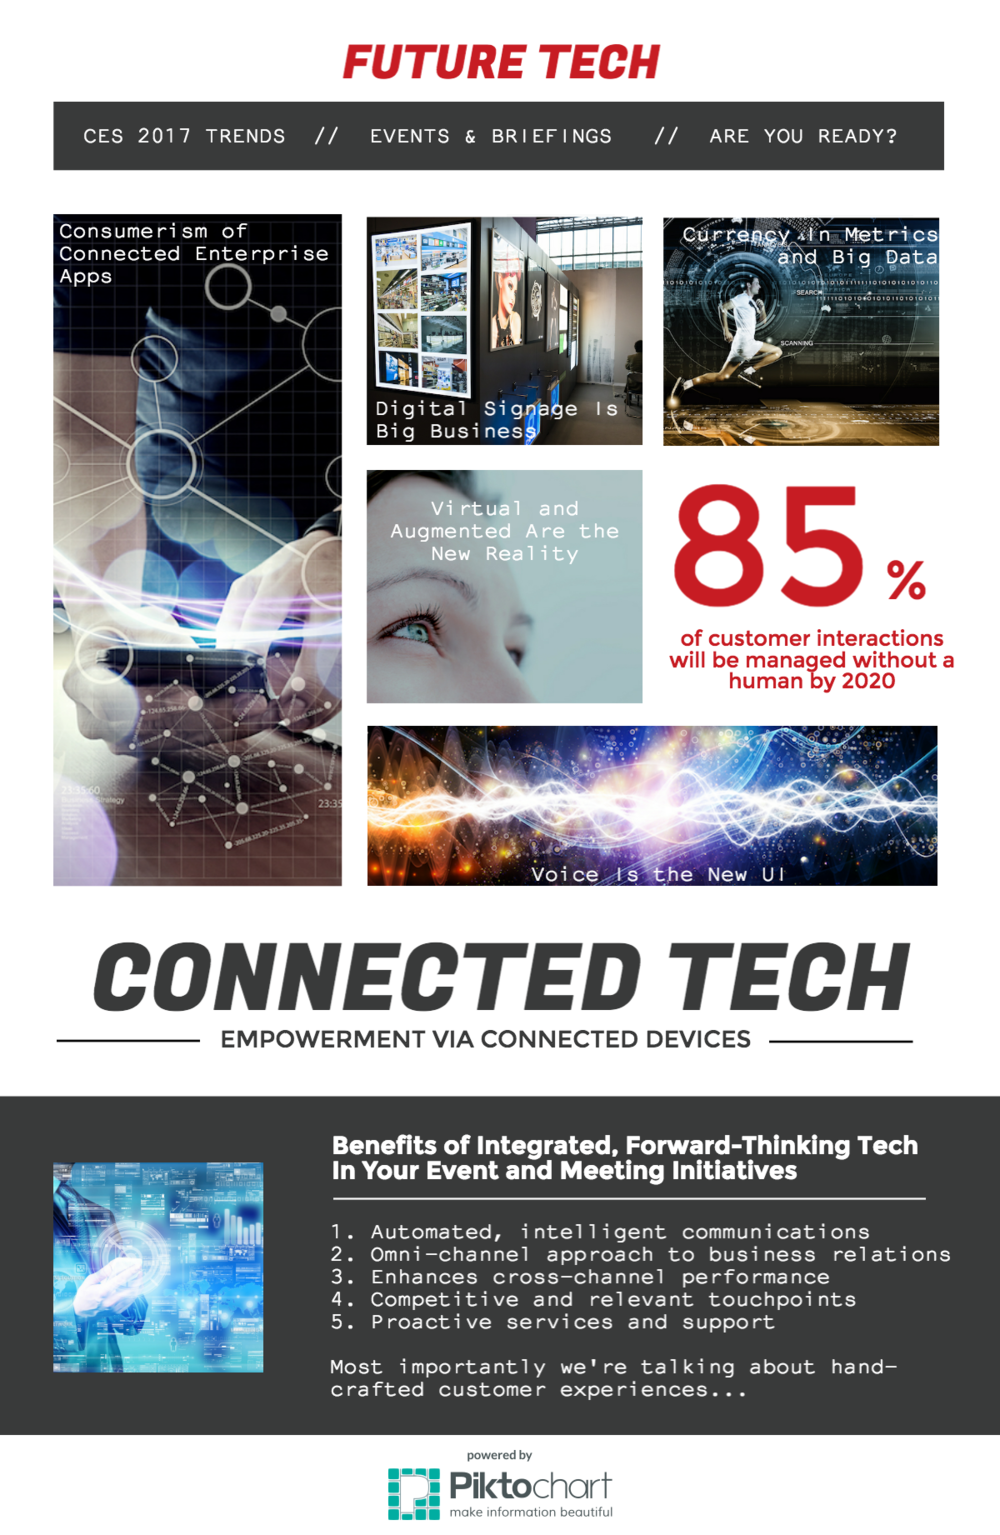 Empowering Business Interactions with Connected Devices